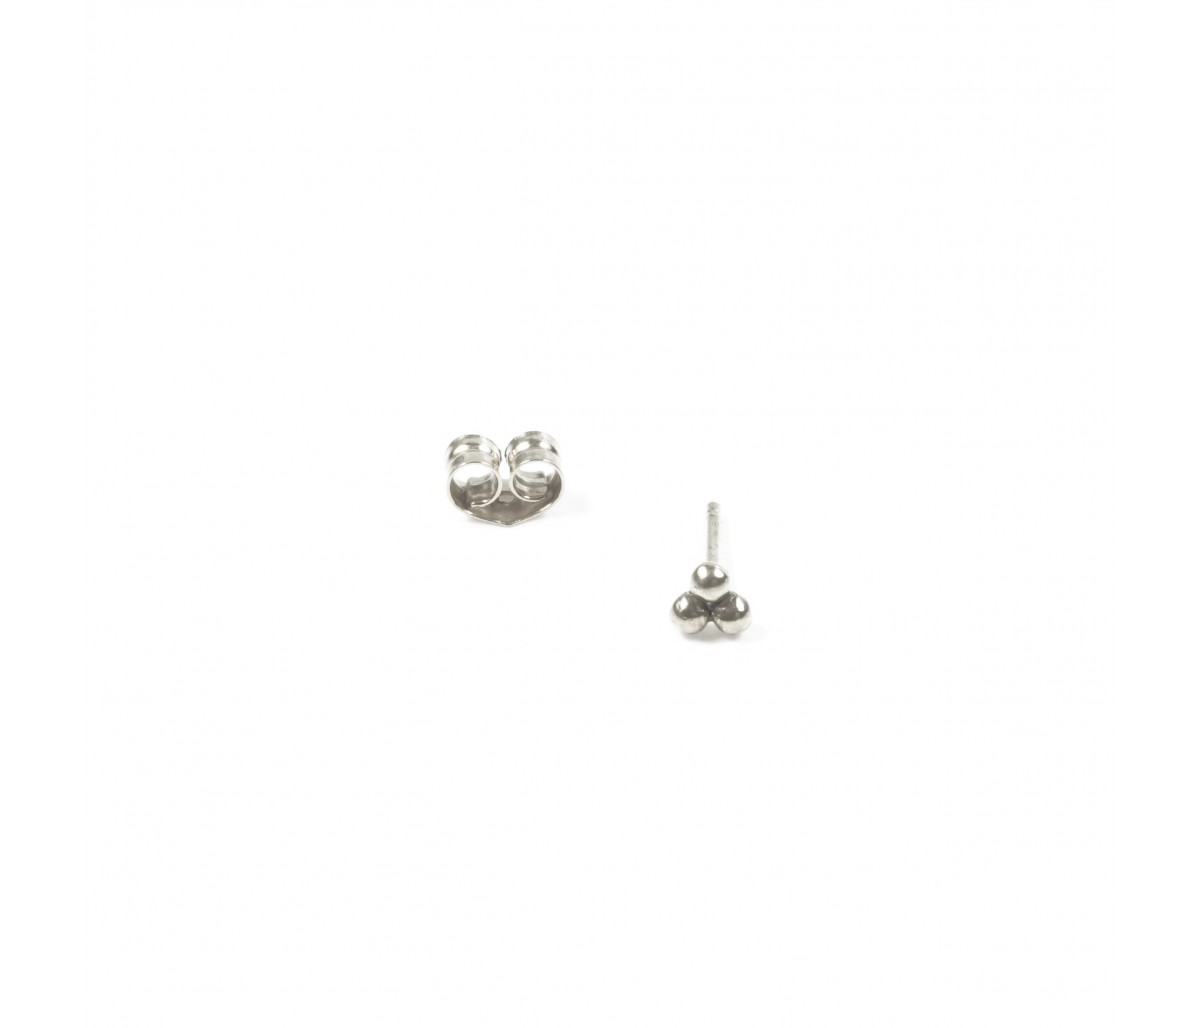 Boucle d'oreille Tiany